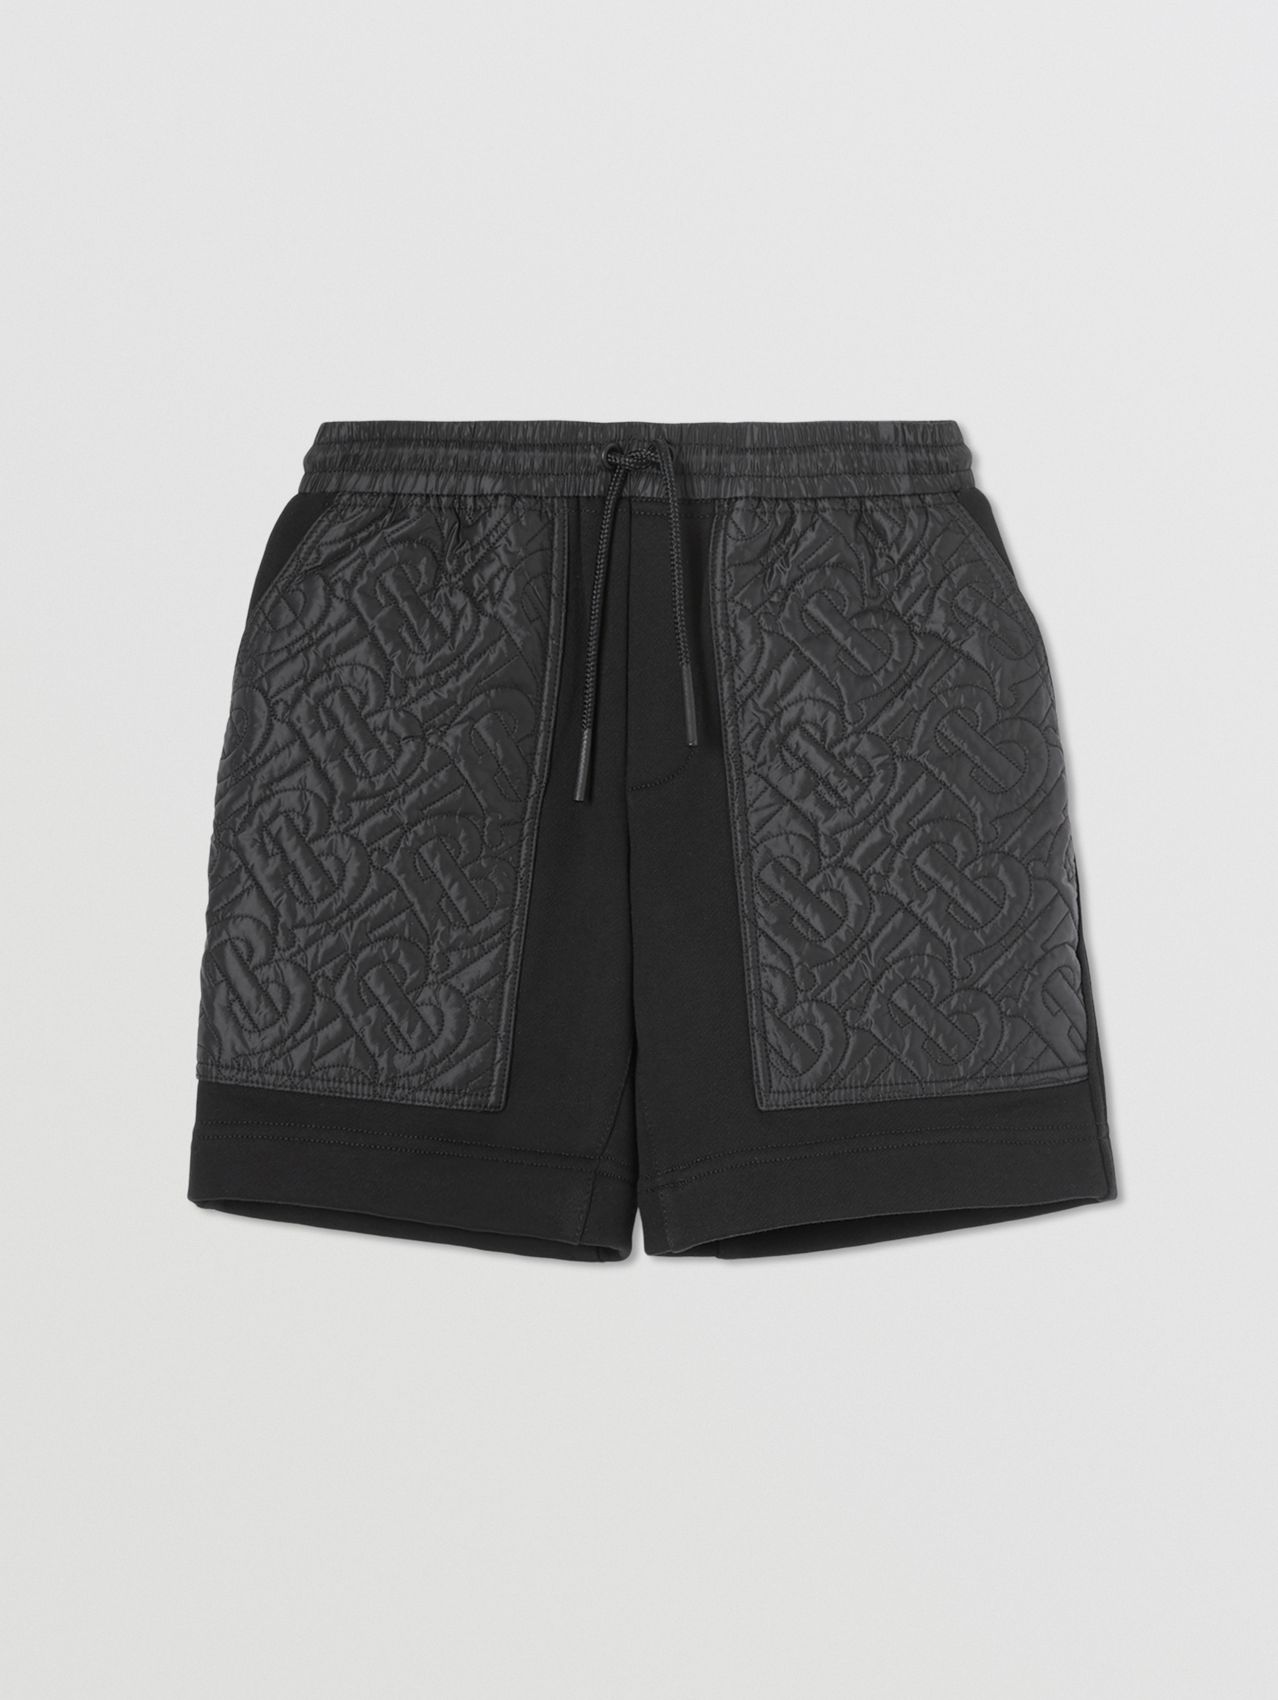 Monogram Quilted Panel Cotton Shorts in Black